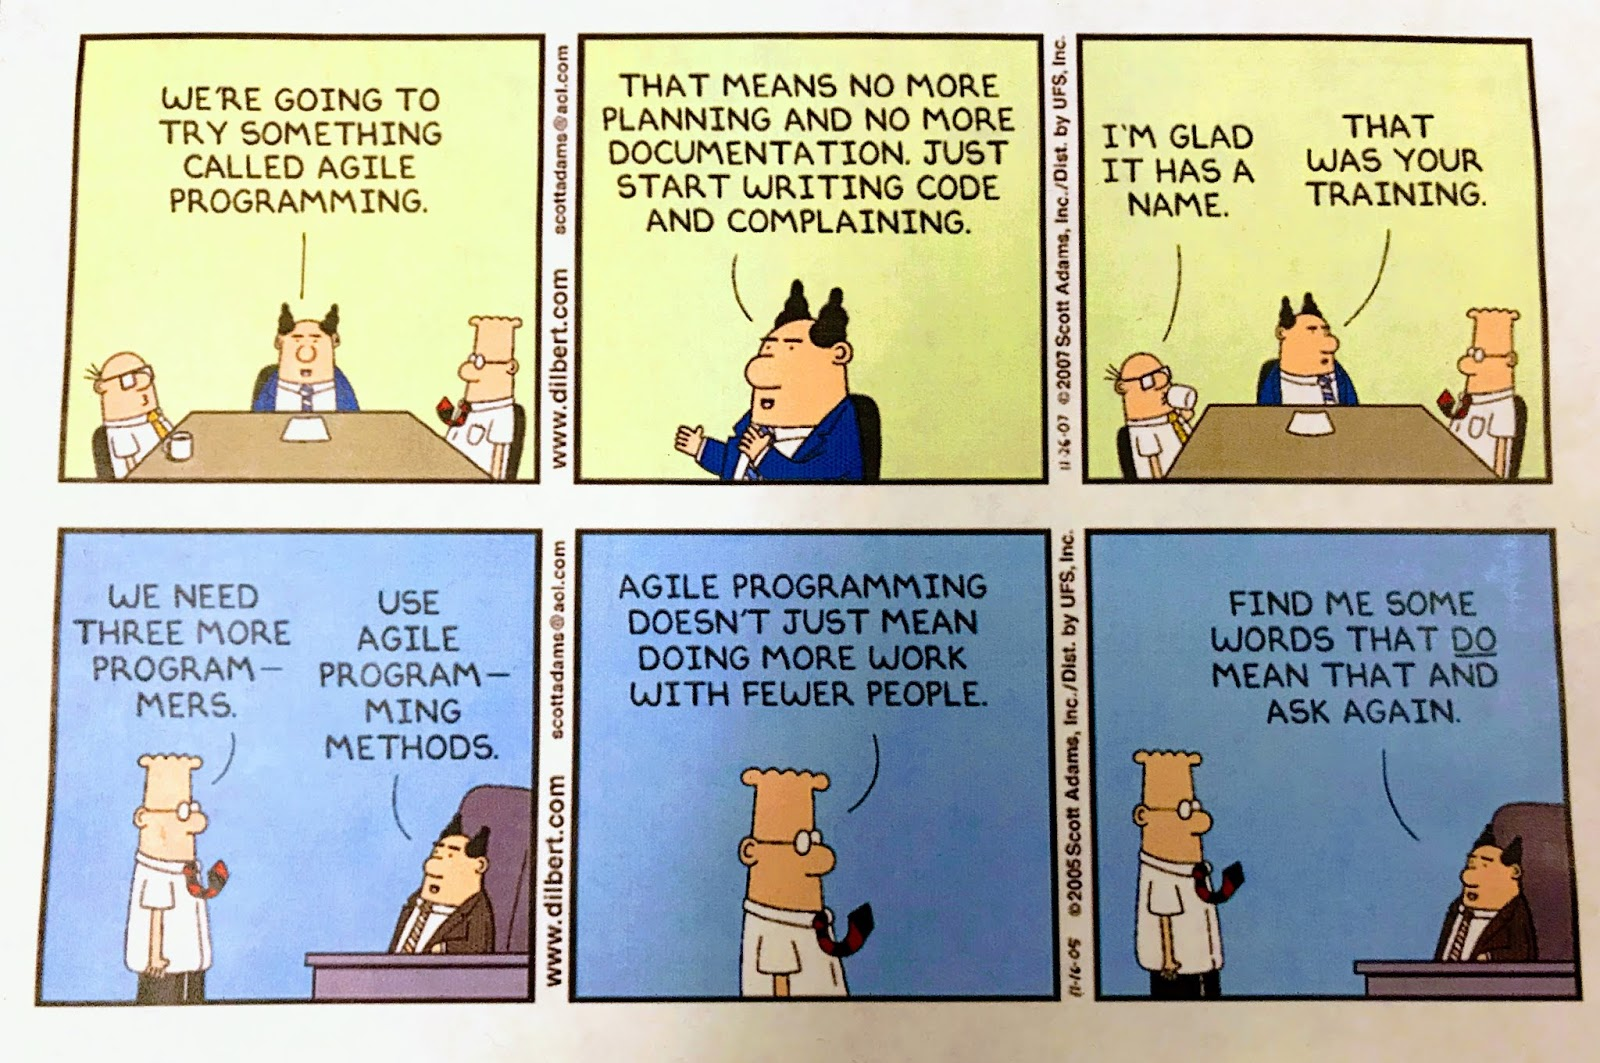 Agile Doesnt Mean Endless